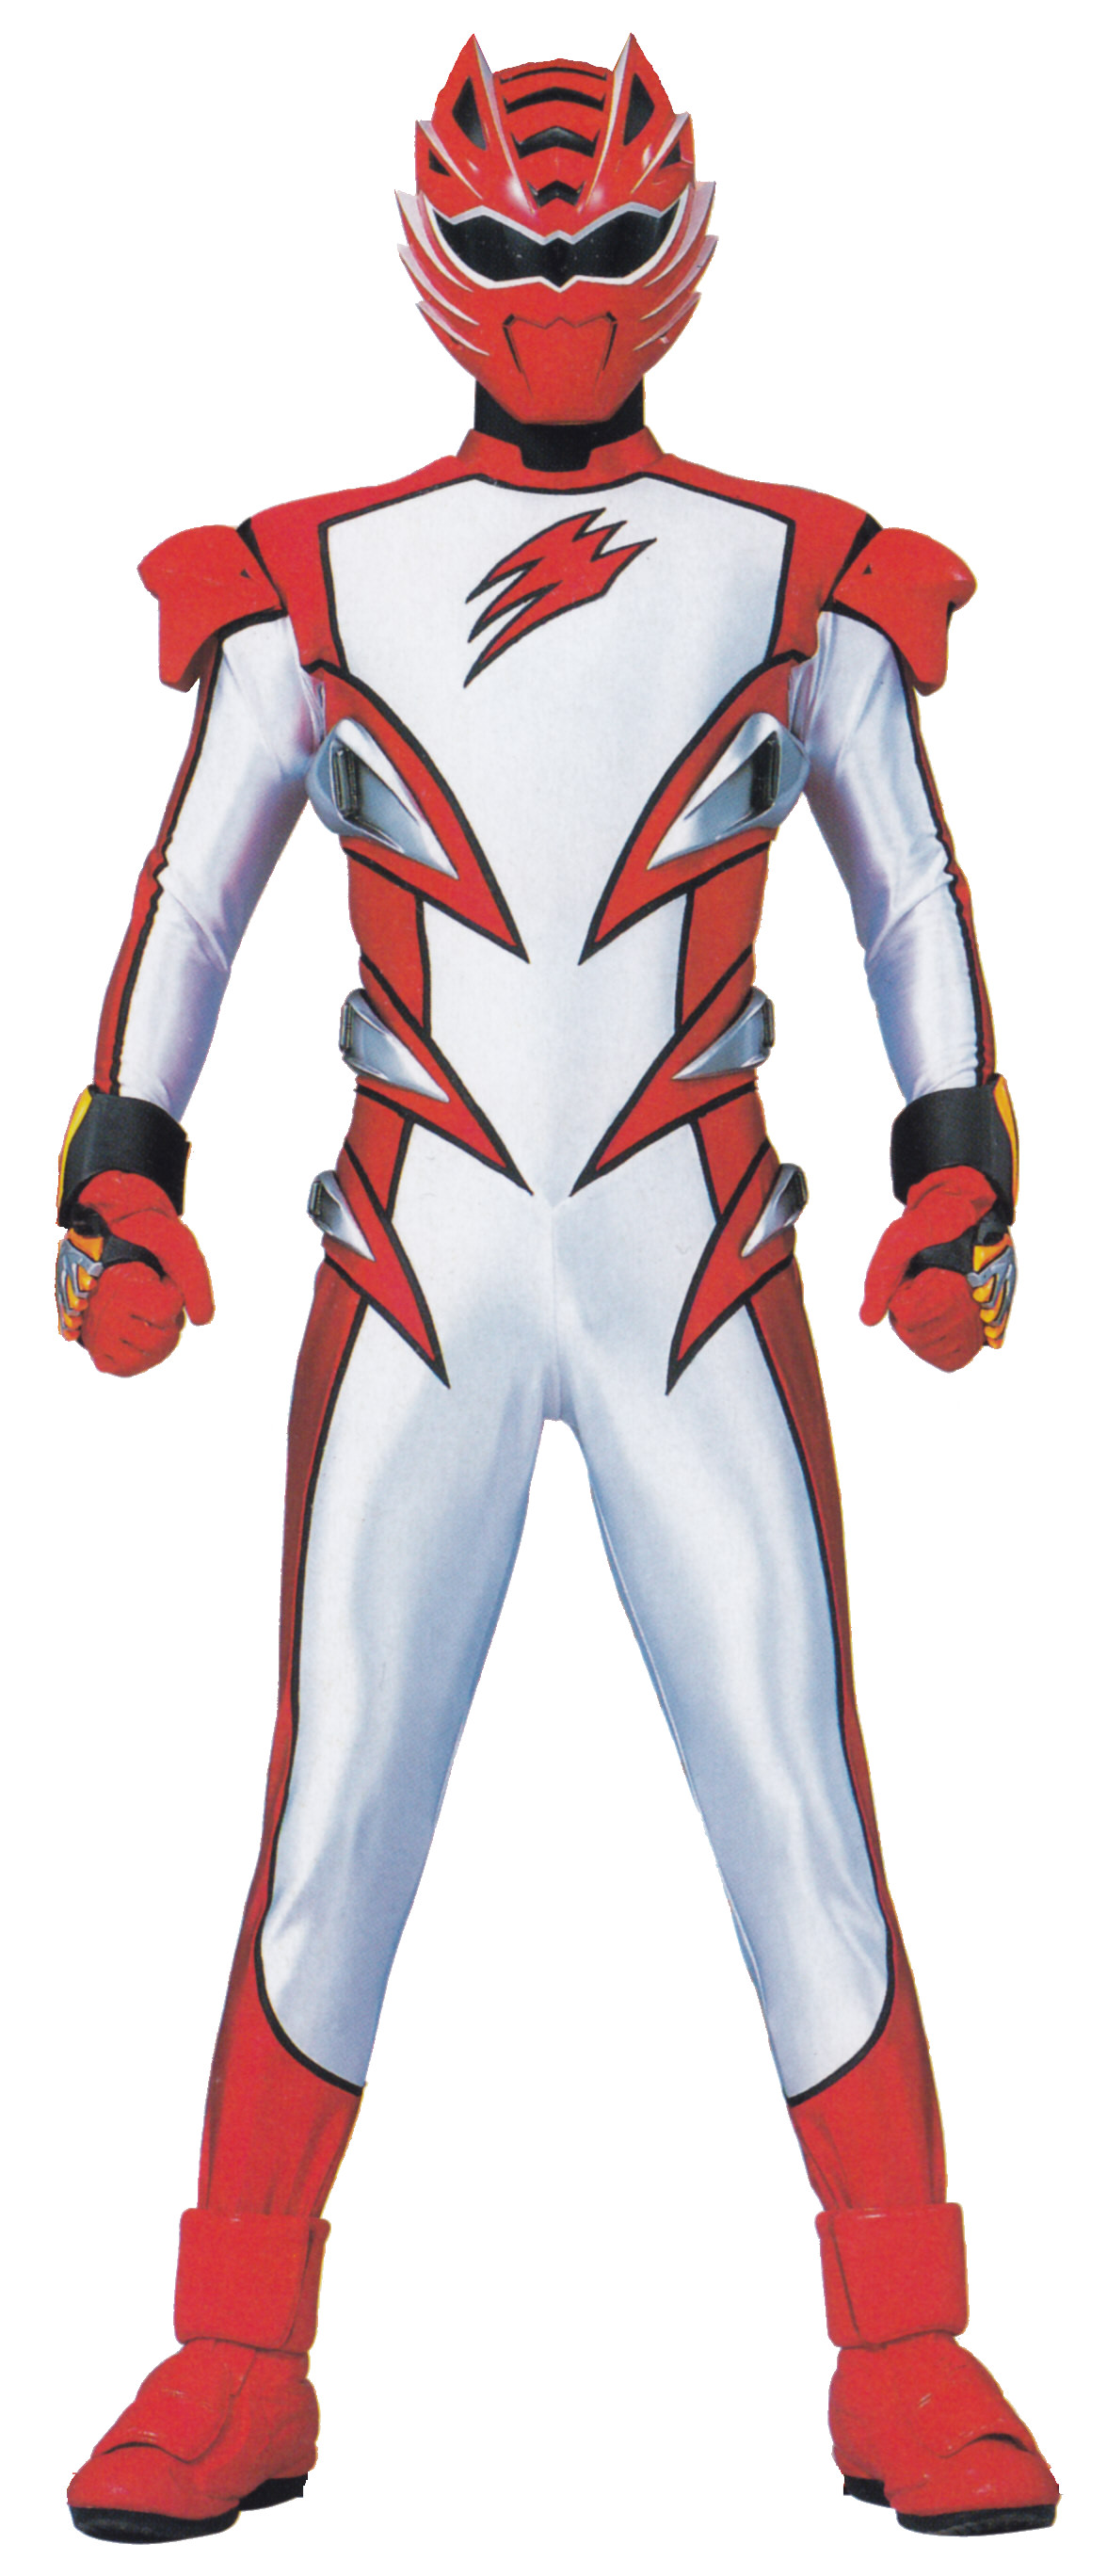 Power rangers jungle fury wallpaper 64 images download 1176x2736 power rangers jungle fury red ranger similiar red ranger drawing keywords voltagebd Image collections